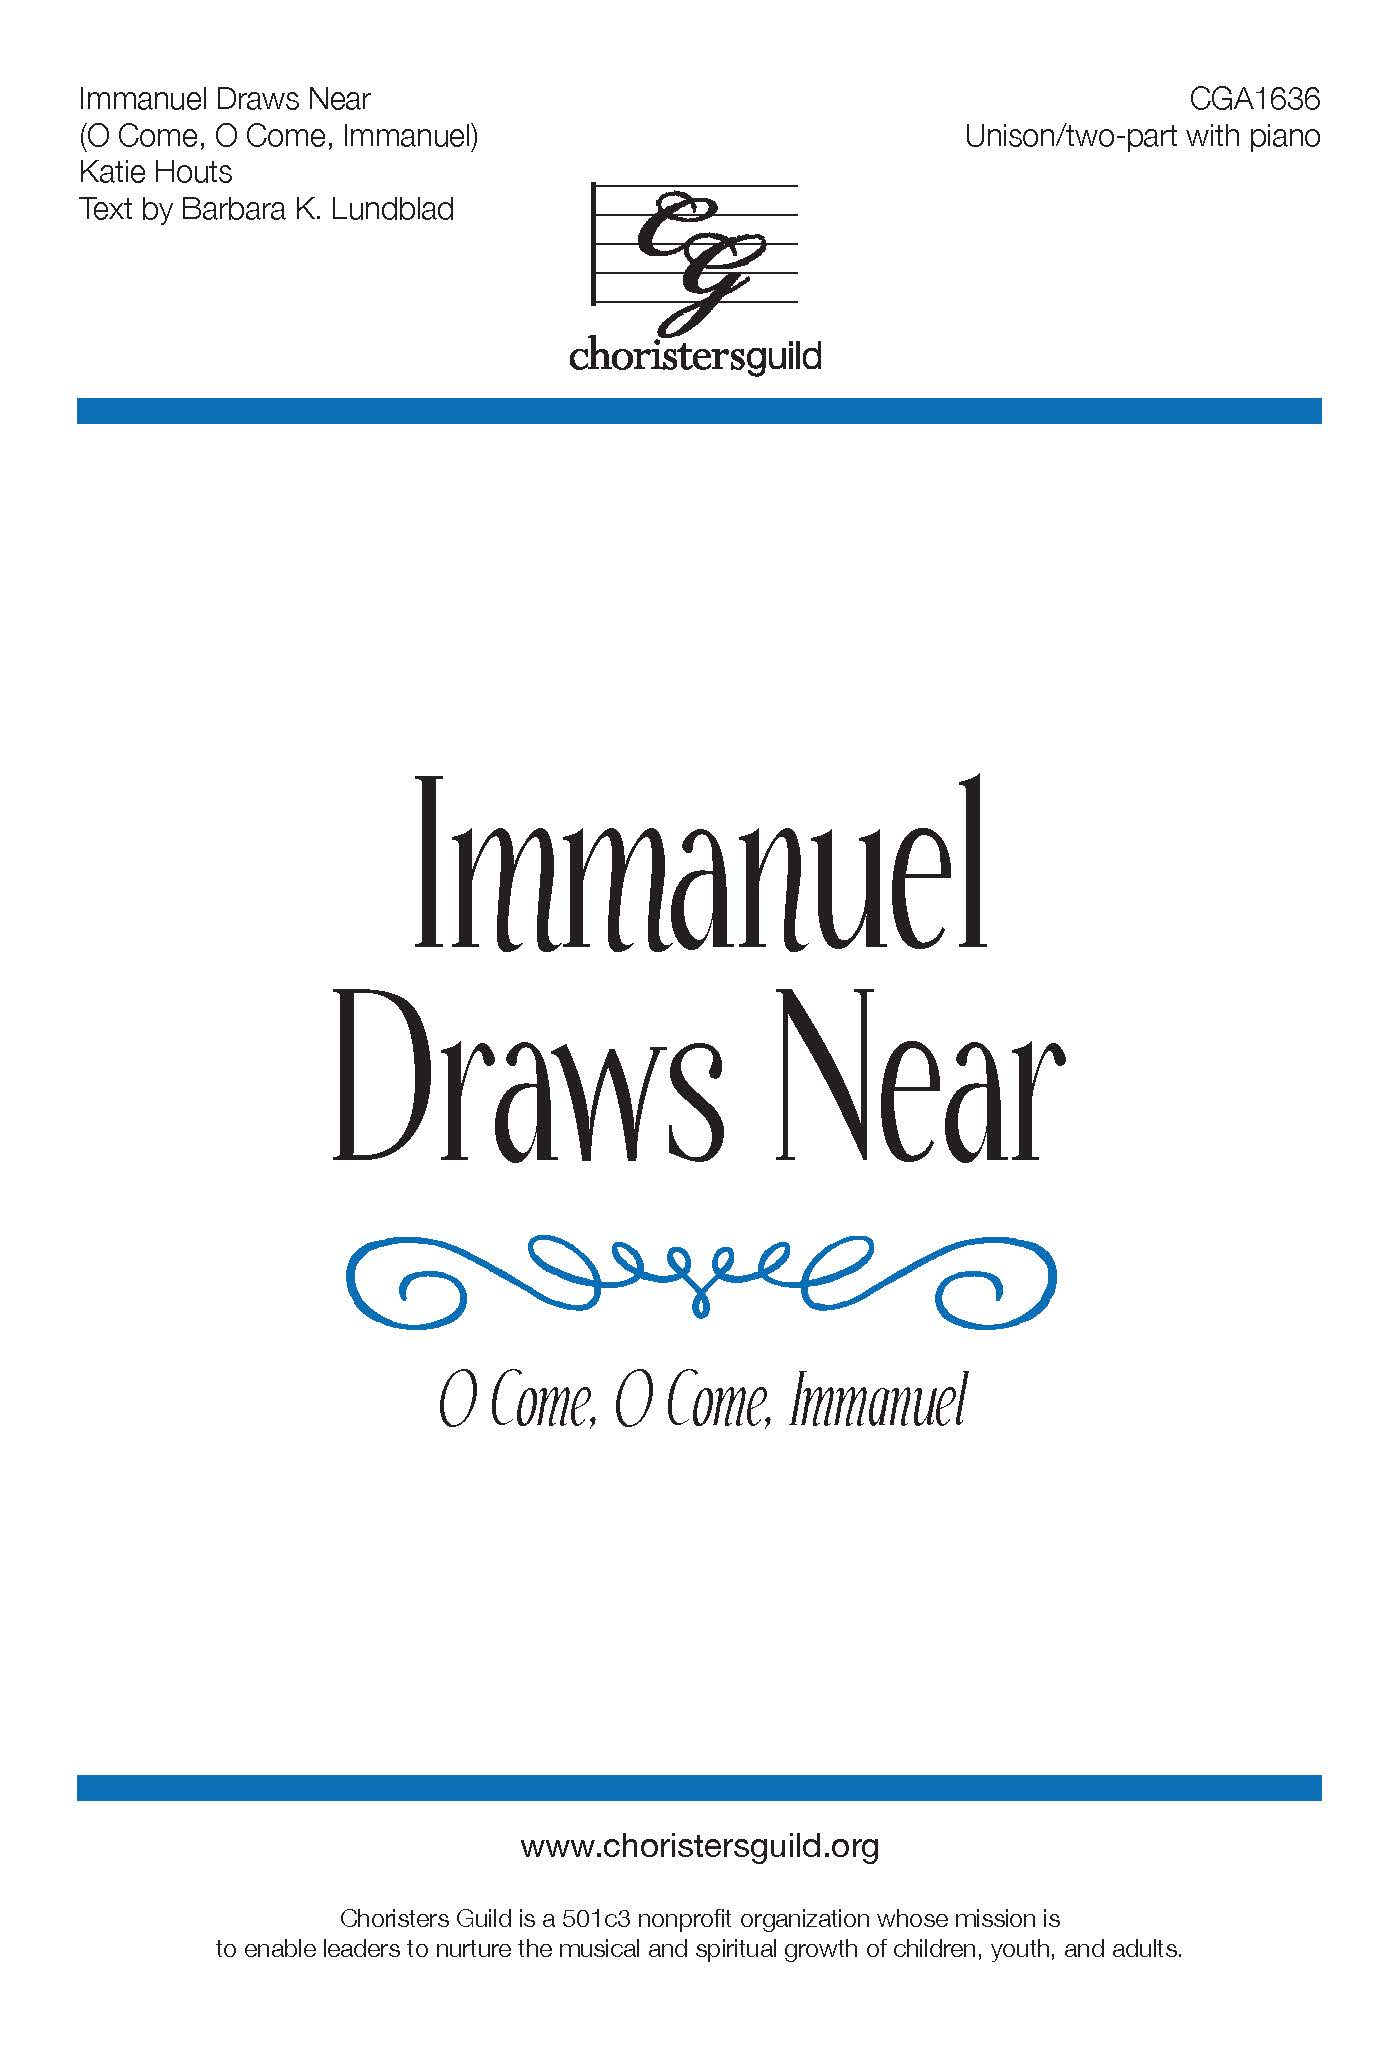 Immanuel Draws Near (O Come, O Come, Immanuel) - Unison/Two-part